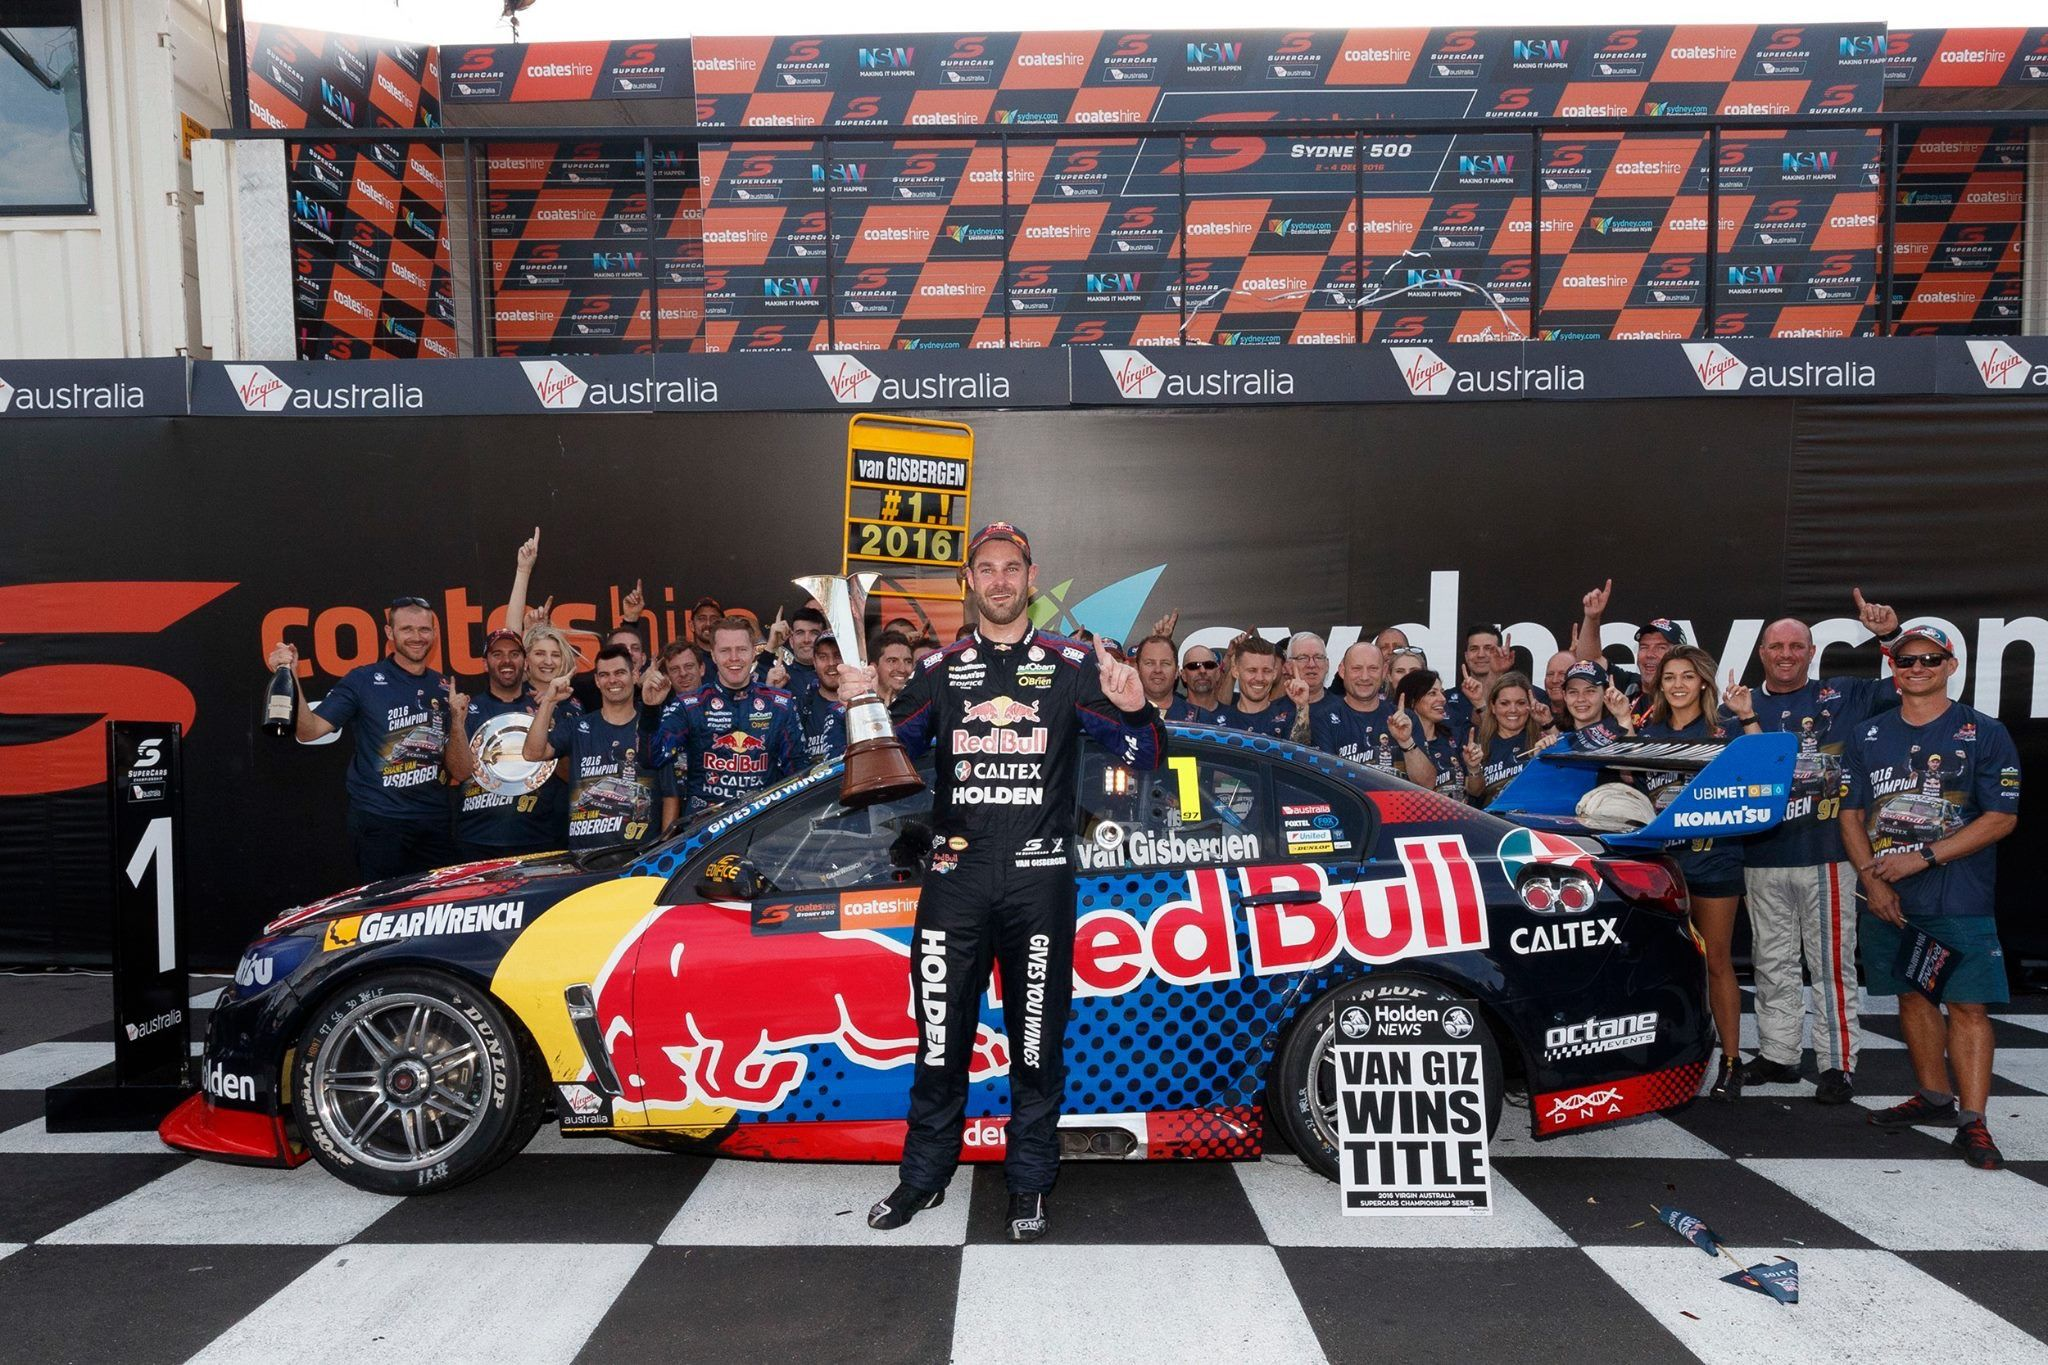 Pin by Andrew Gloistein on Red Bull Racing Red bull